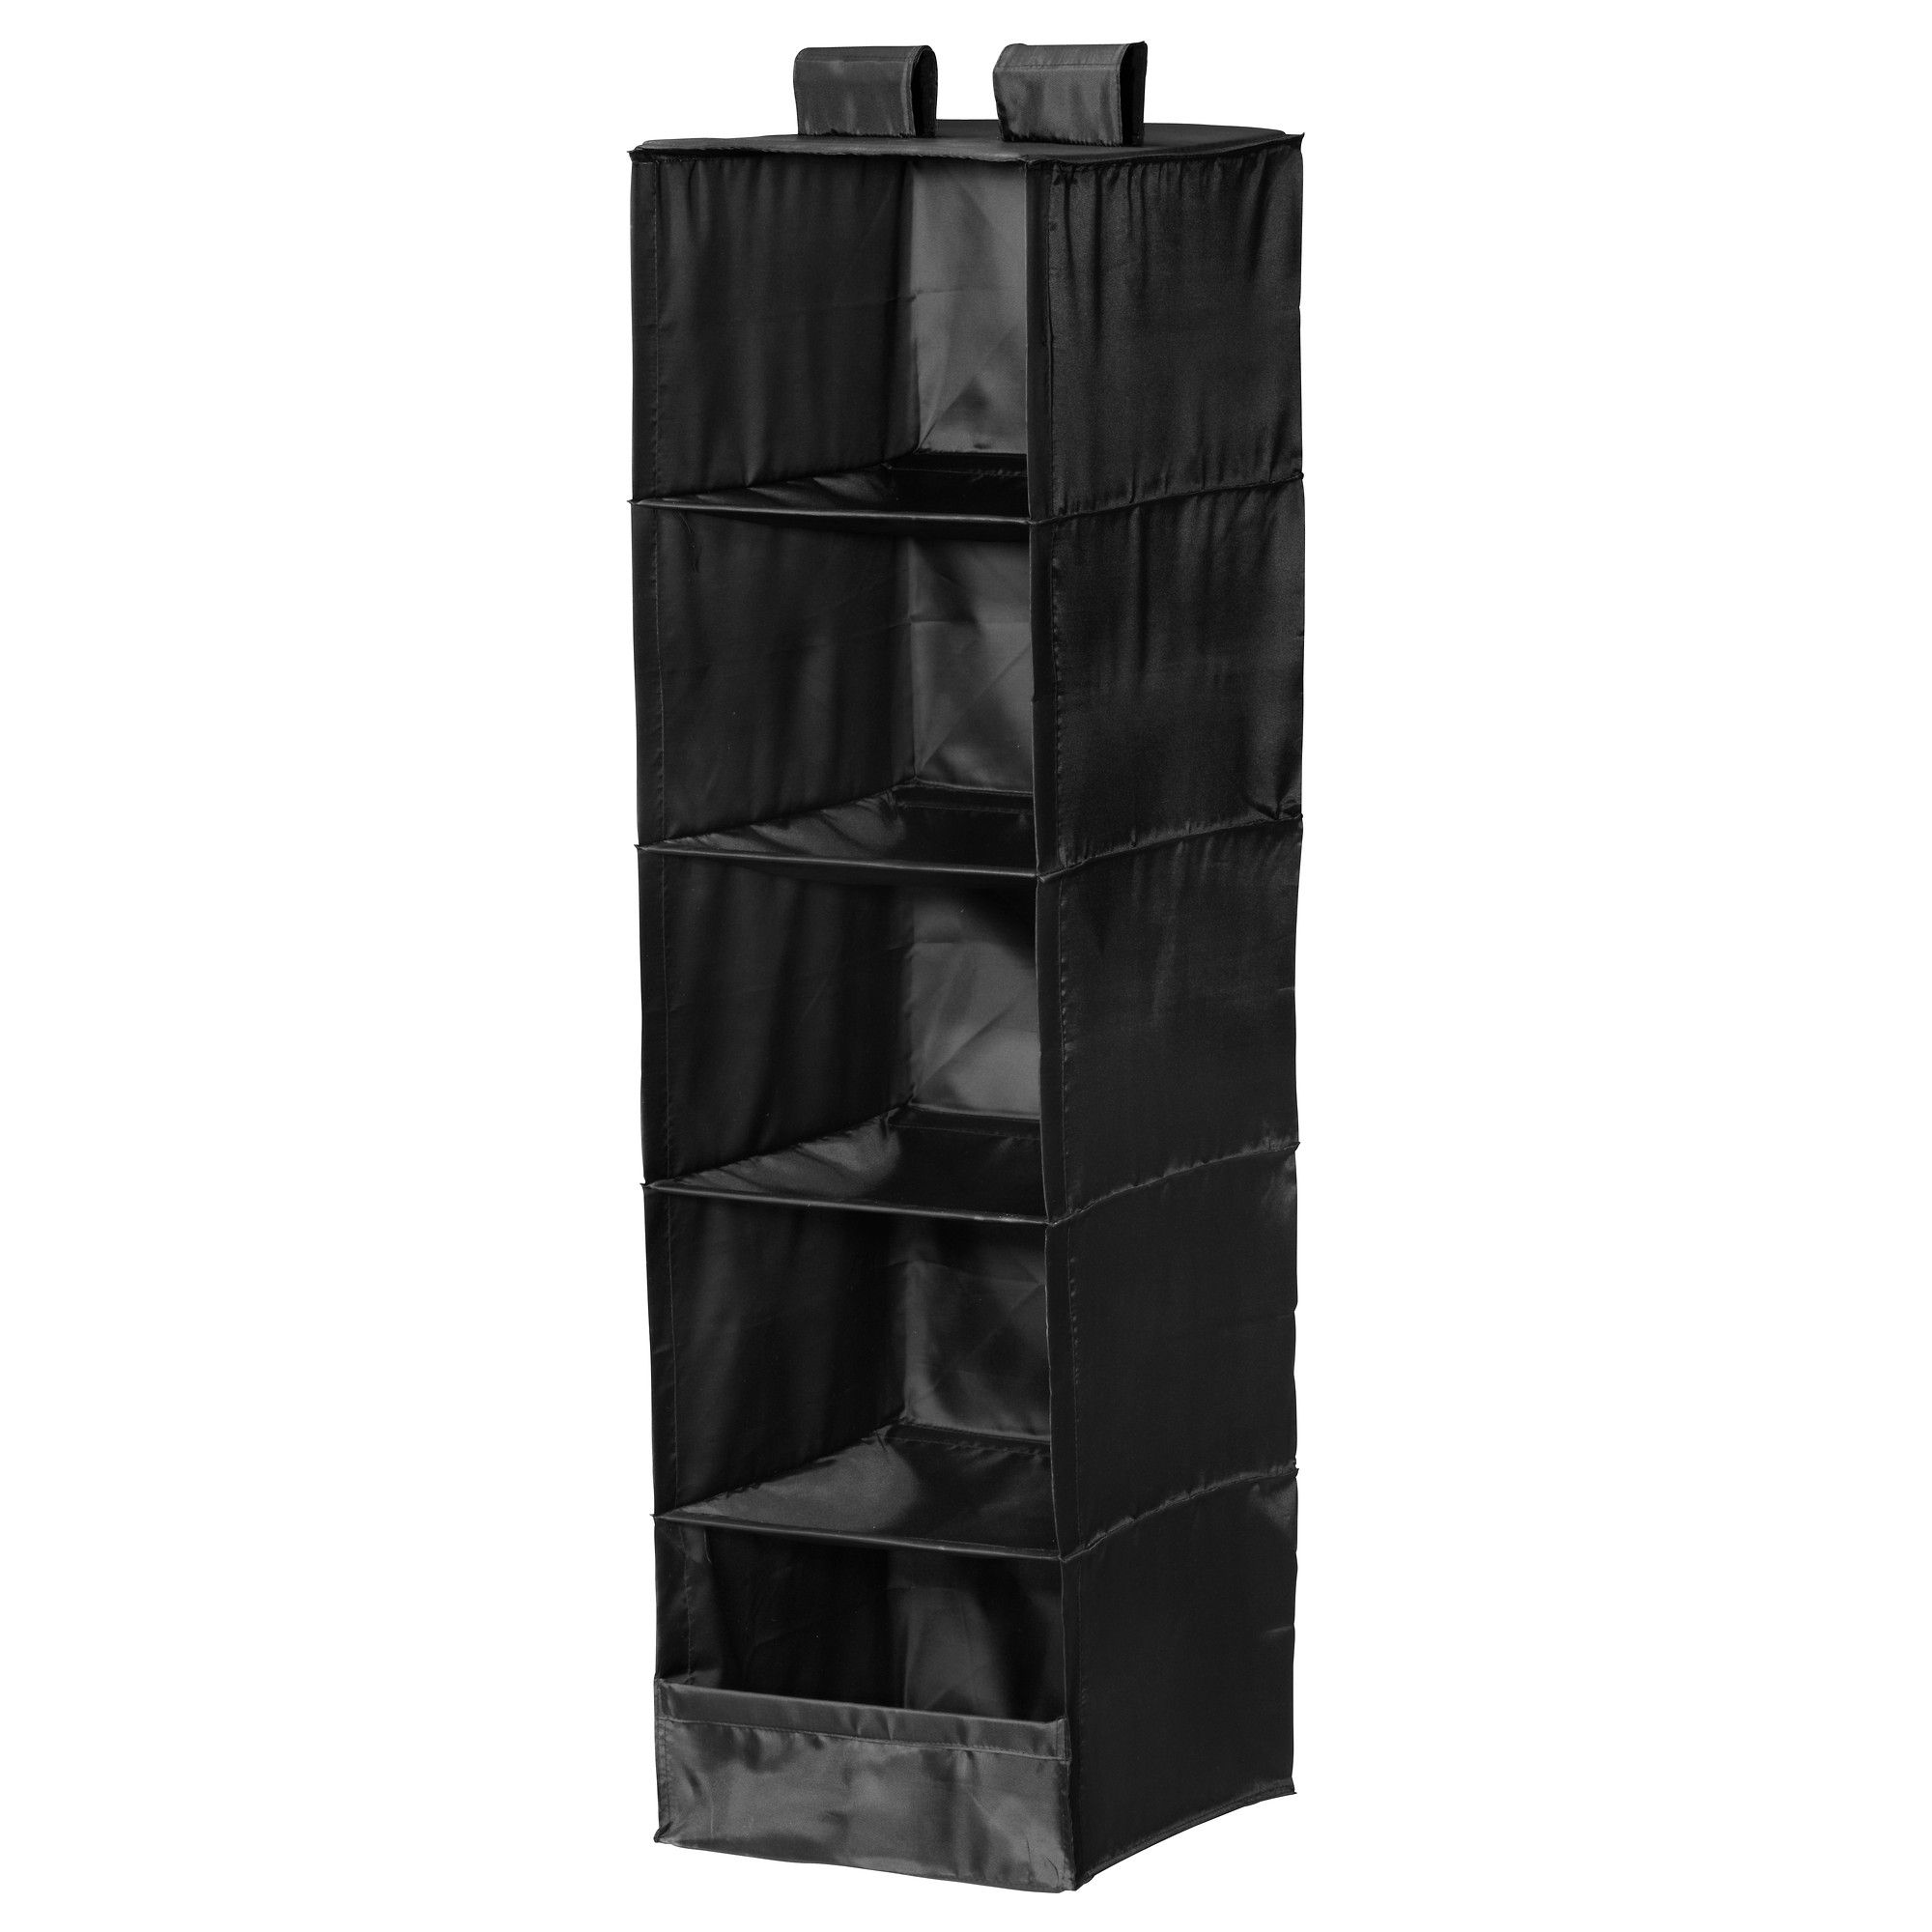 Furniture And Home Furnishings Ikea Hanging Clothes Organizer